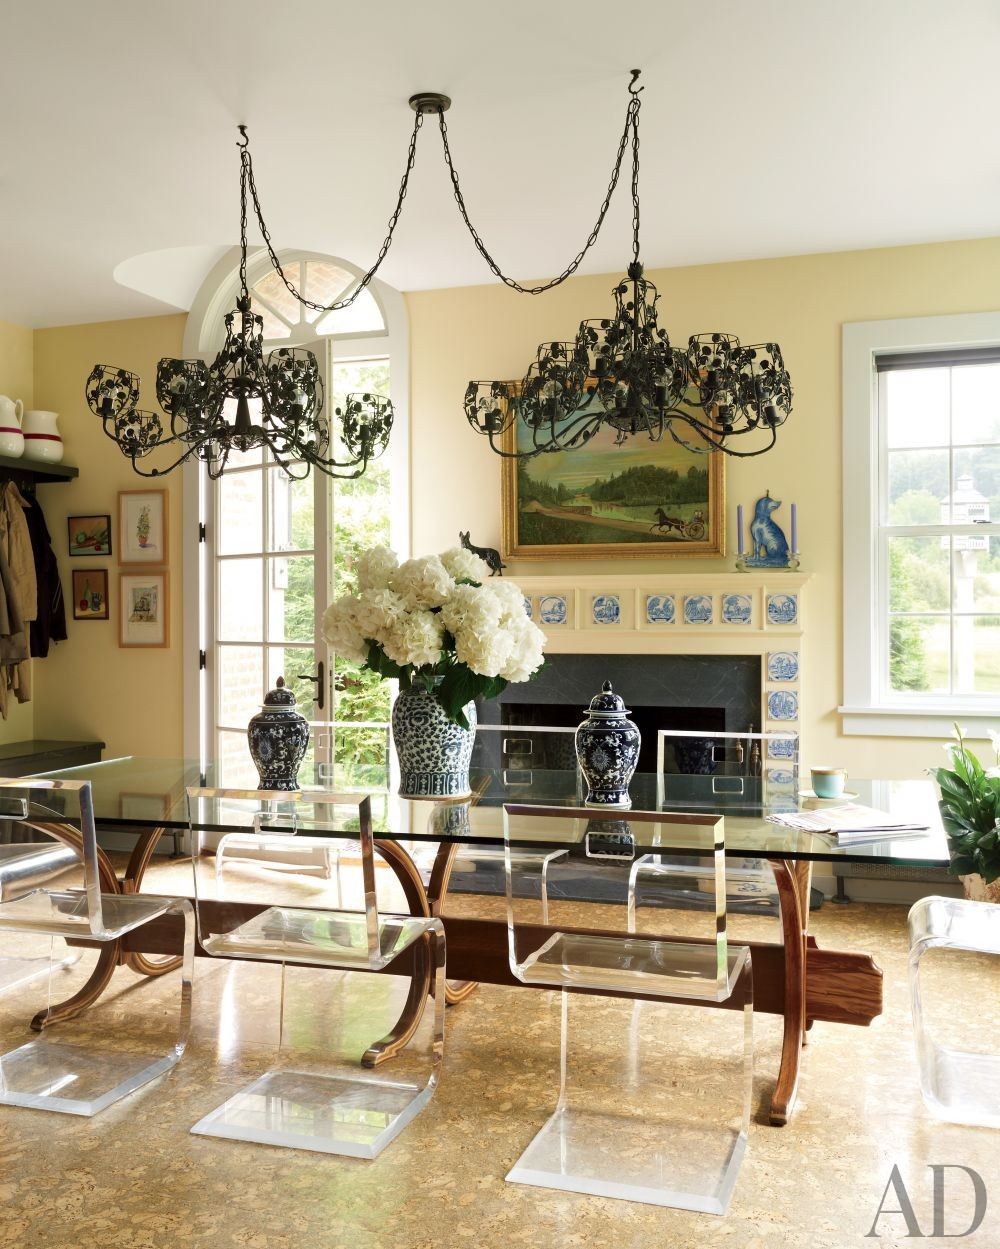 Traditional Kitchen by Alison Spear in Dutchess County, New York